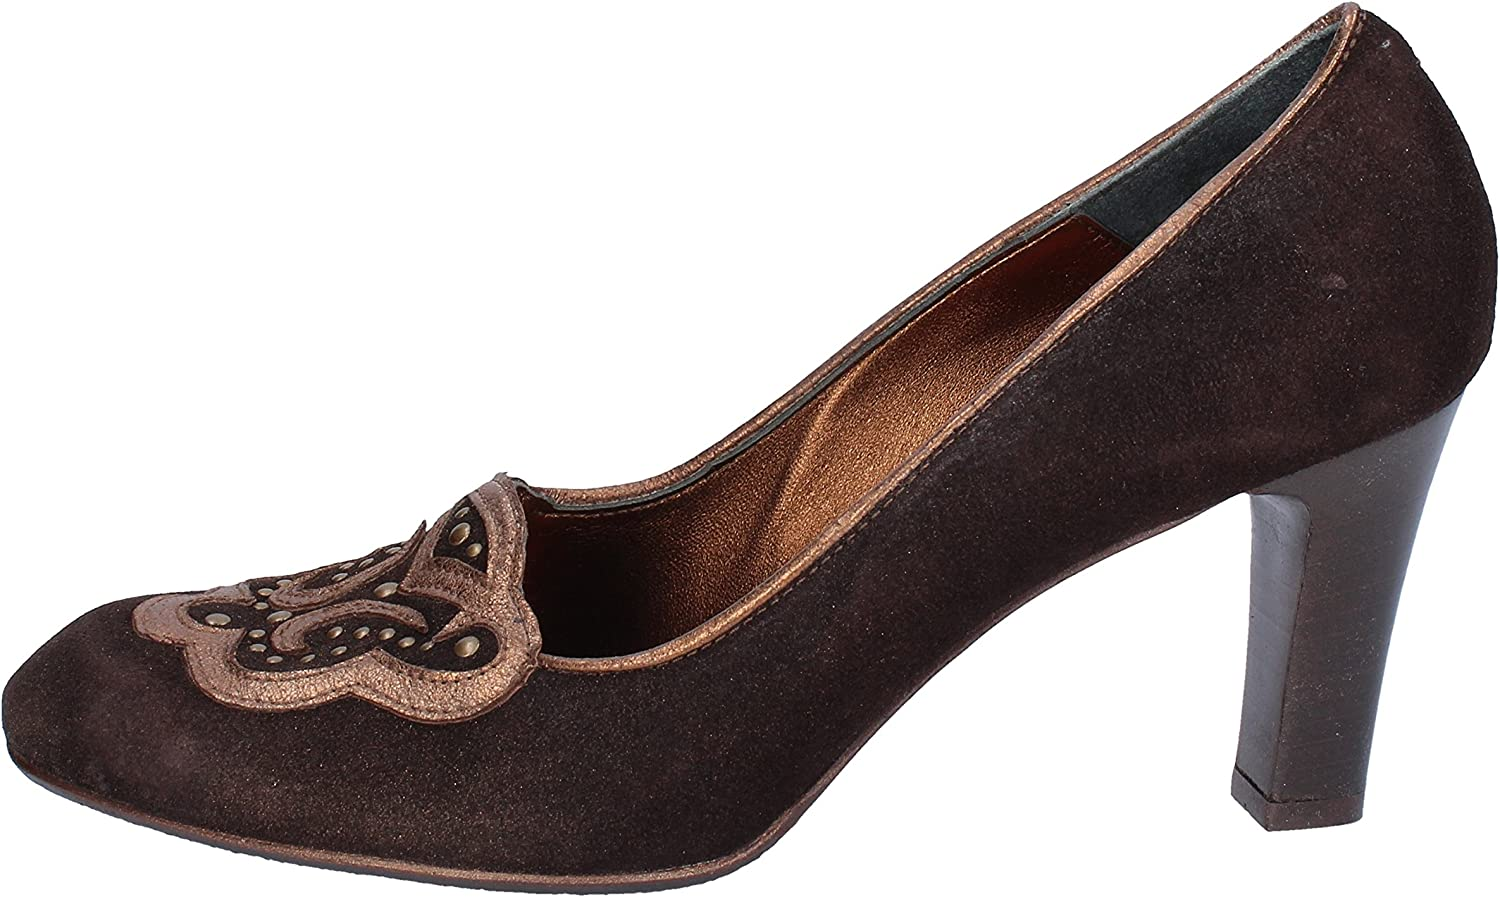 IL GRECO Pumps-shoes Womens Suede Brown 11 US